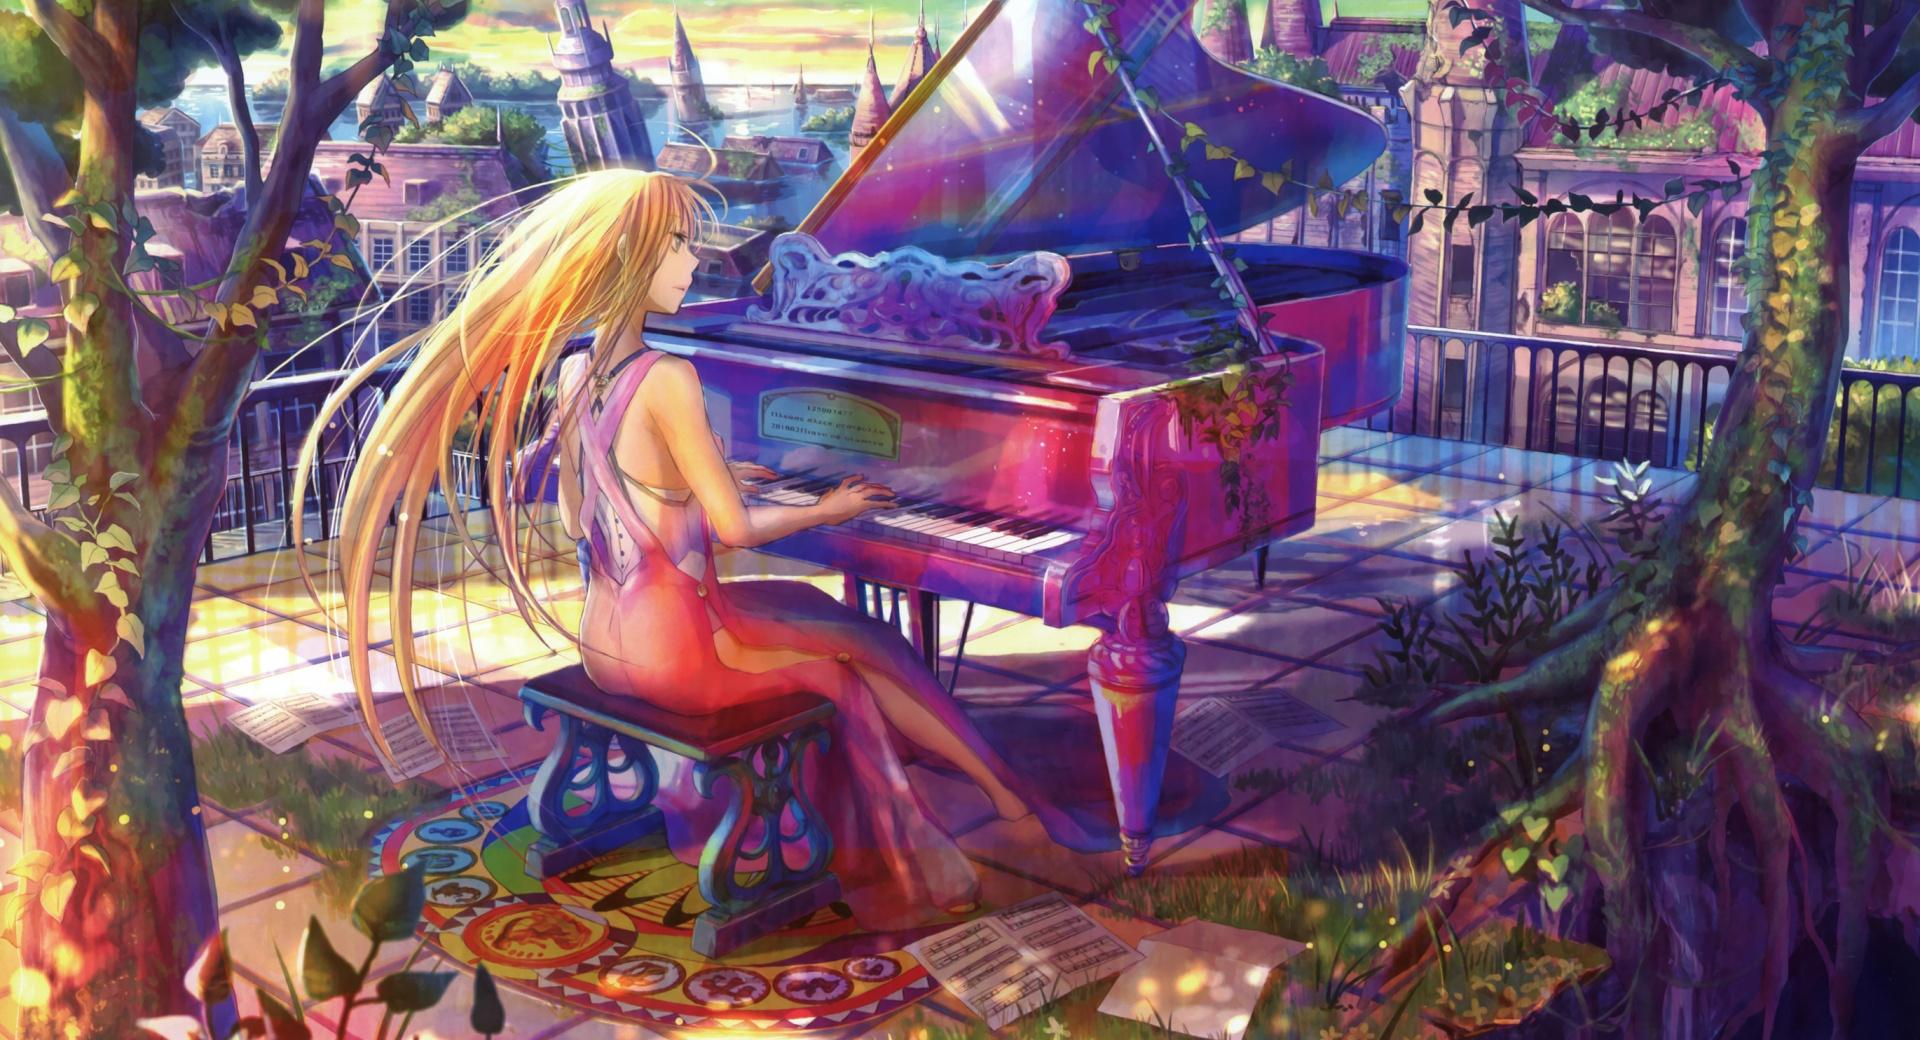 Fuji Choko Playing Piano wallpapers HD quality